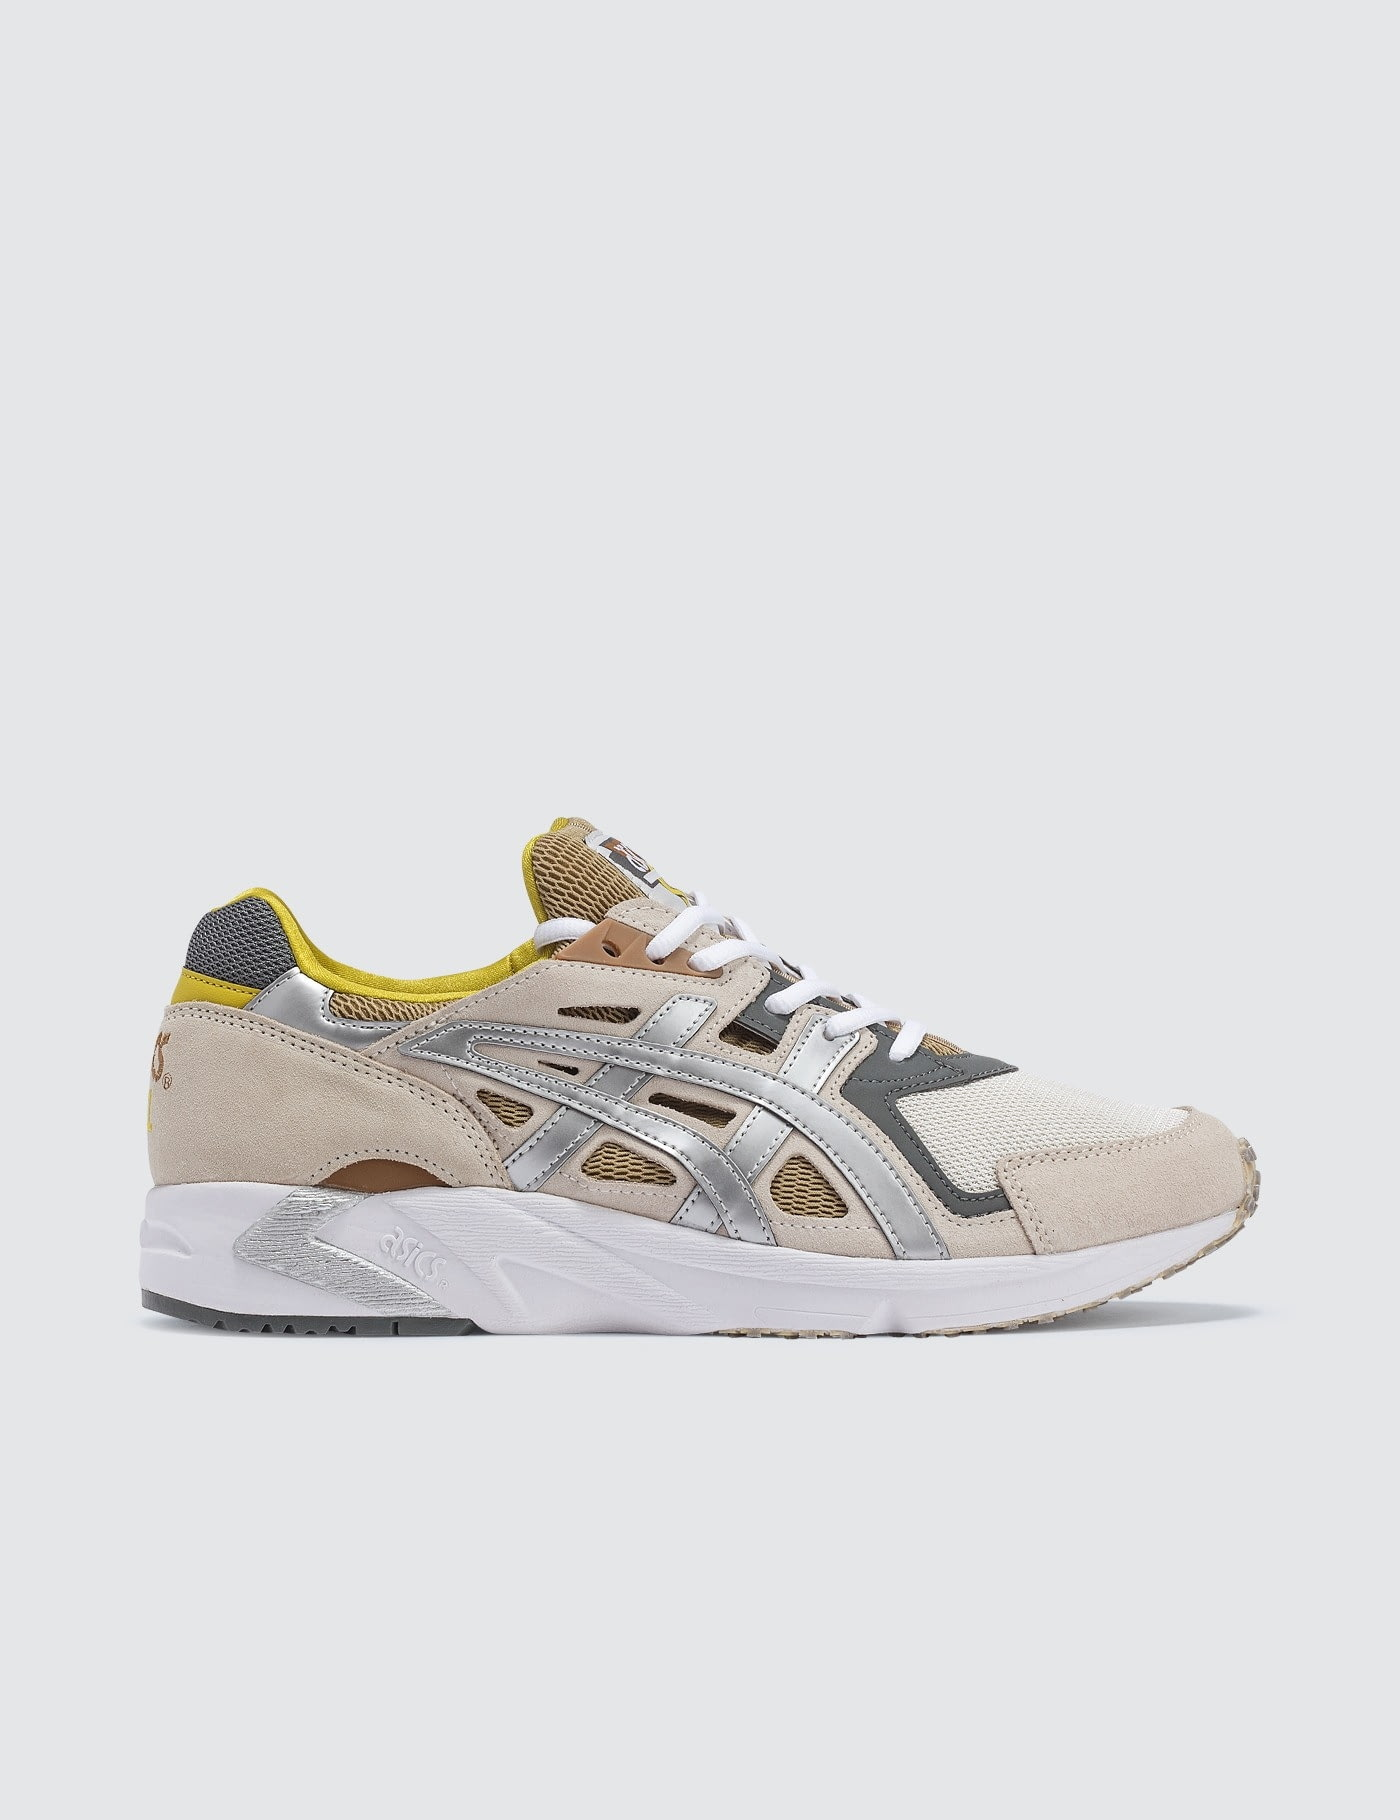 finest selection 6b402 e84d0 Gel-Ds Trainer OG, ASICS